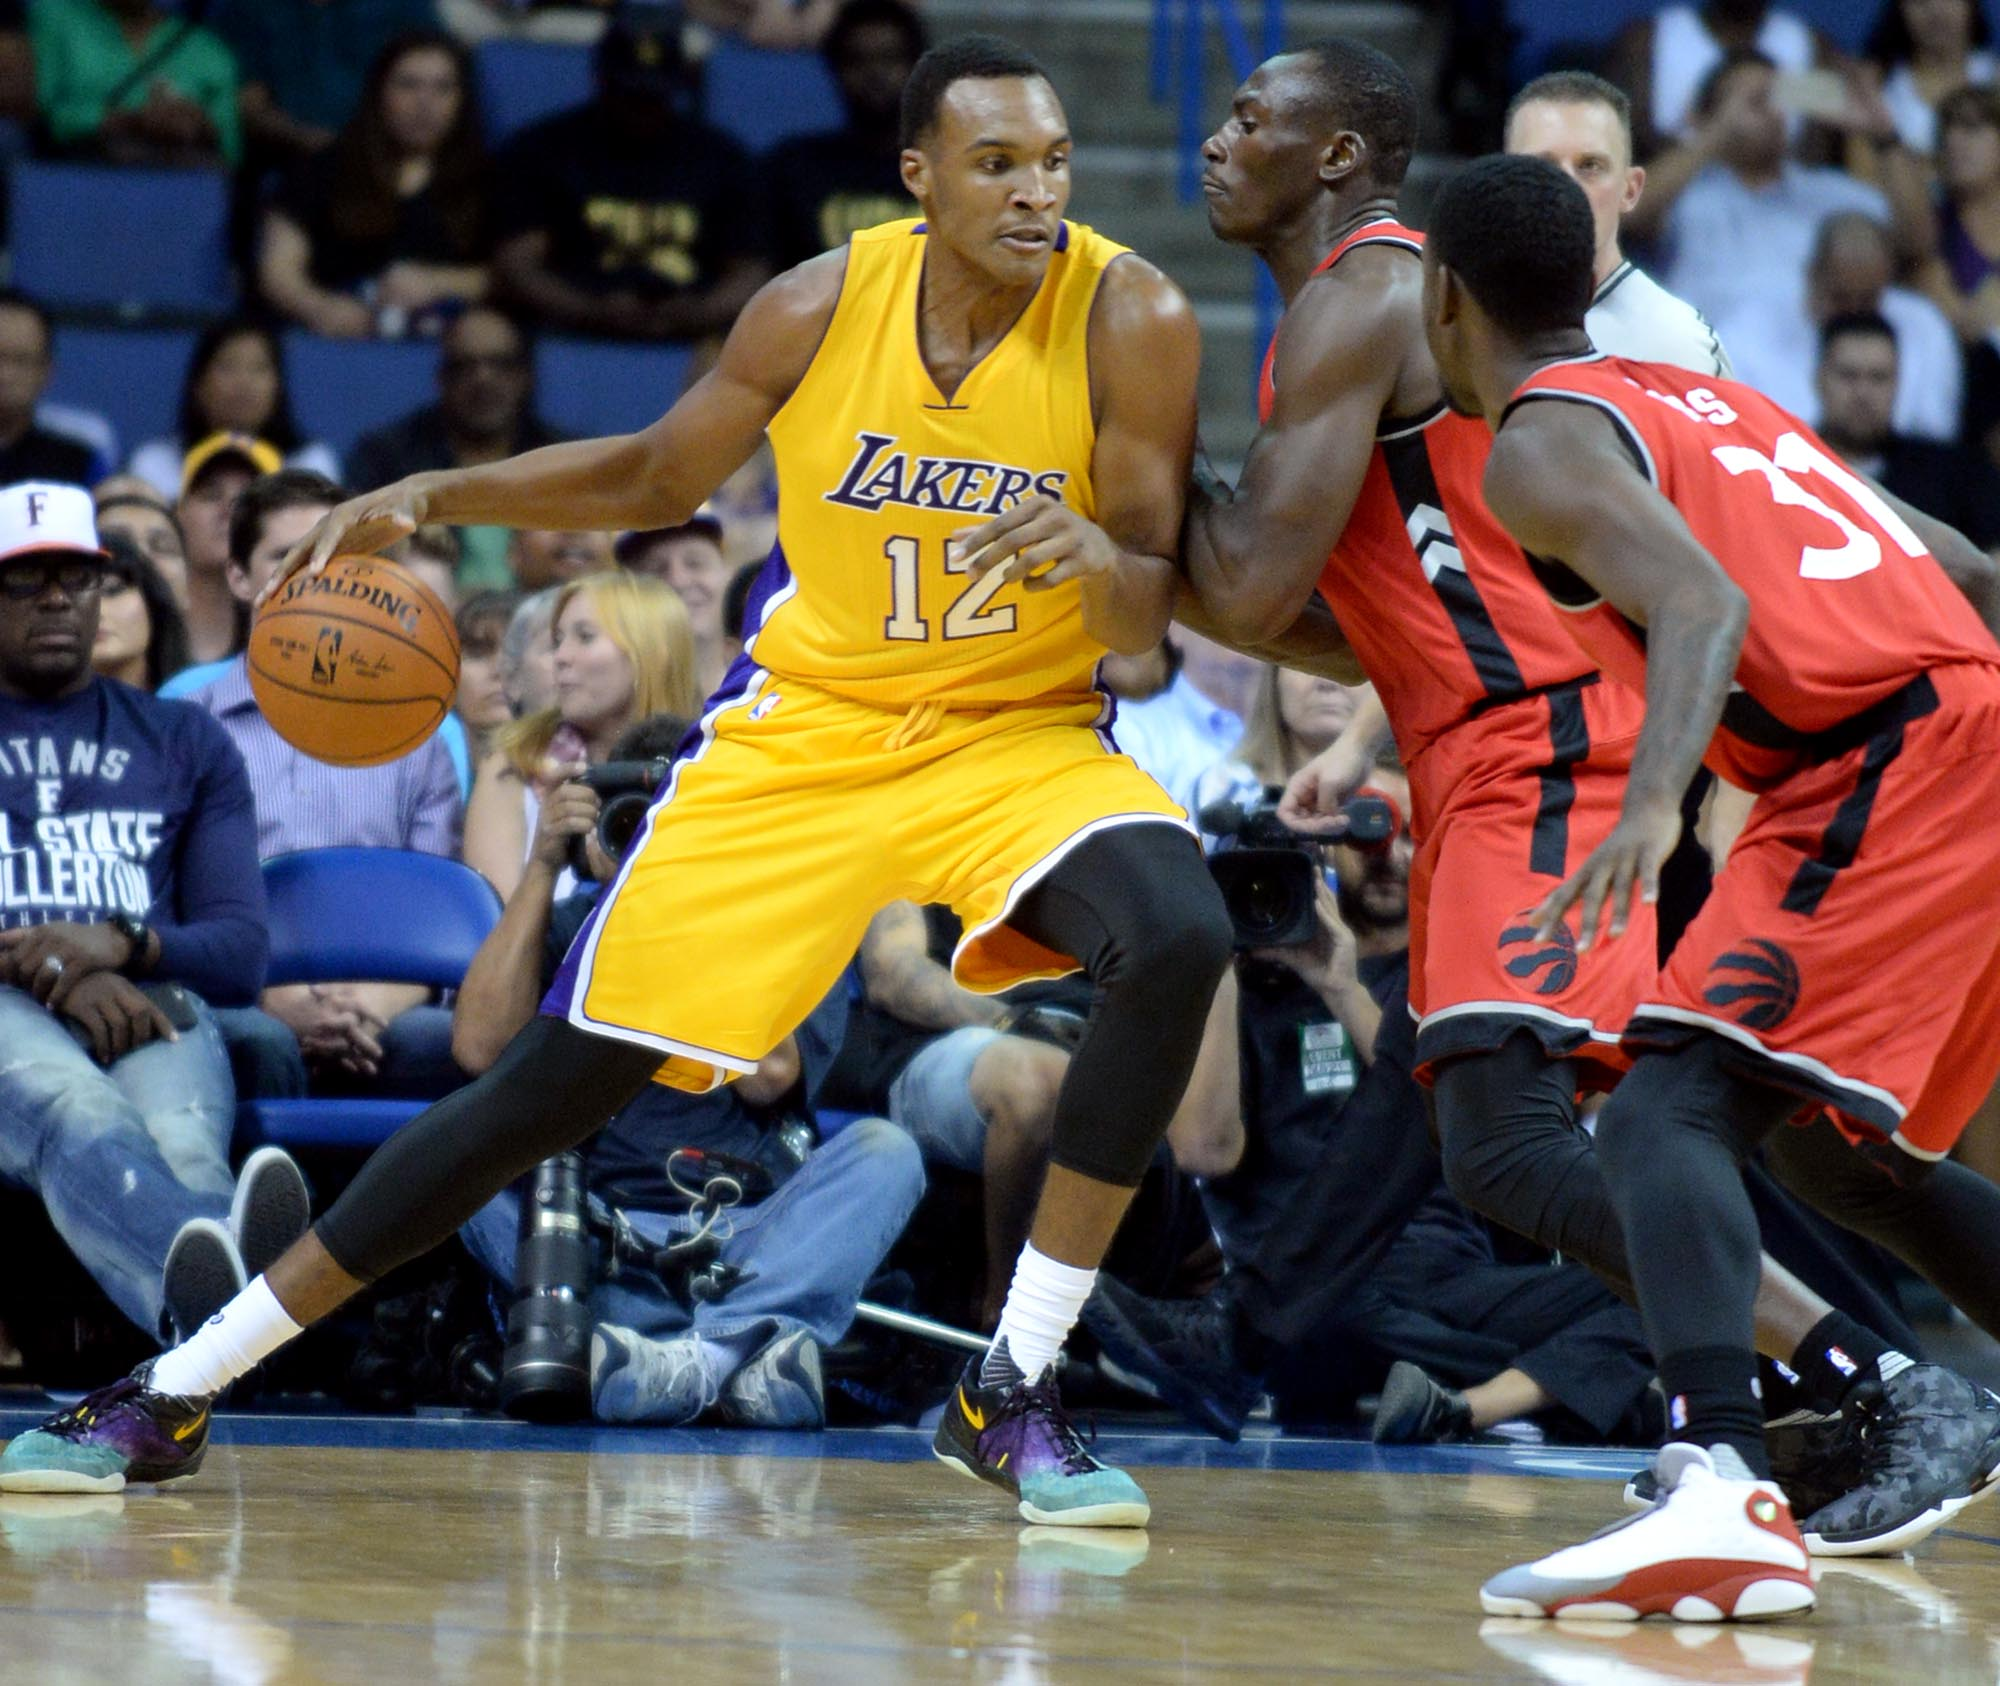 Los Angeles Lakers vs Toronto Raptors on Thursday, October 8, 2015 at Citizens Business Bank Arena in Ontario, Ca. (Micah Escamilla/Inland Valley Daily Bulletin)